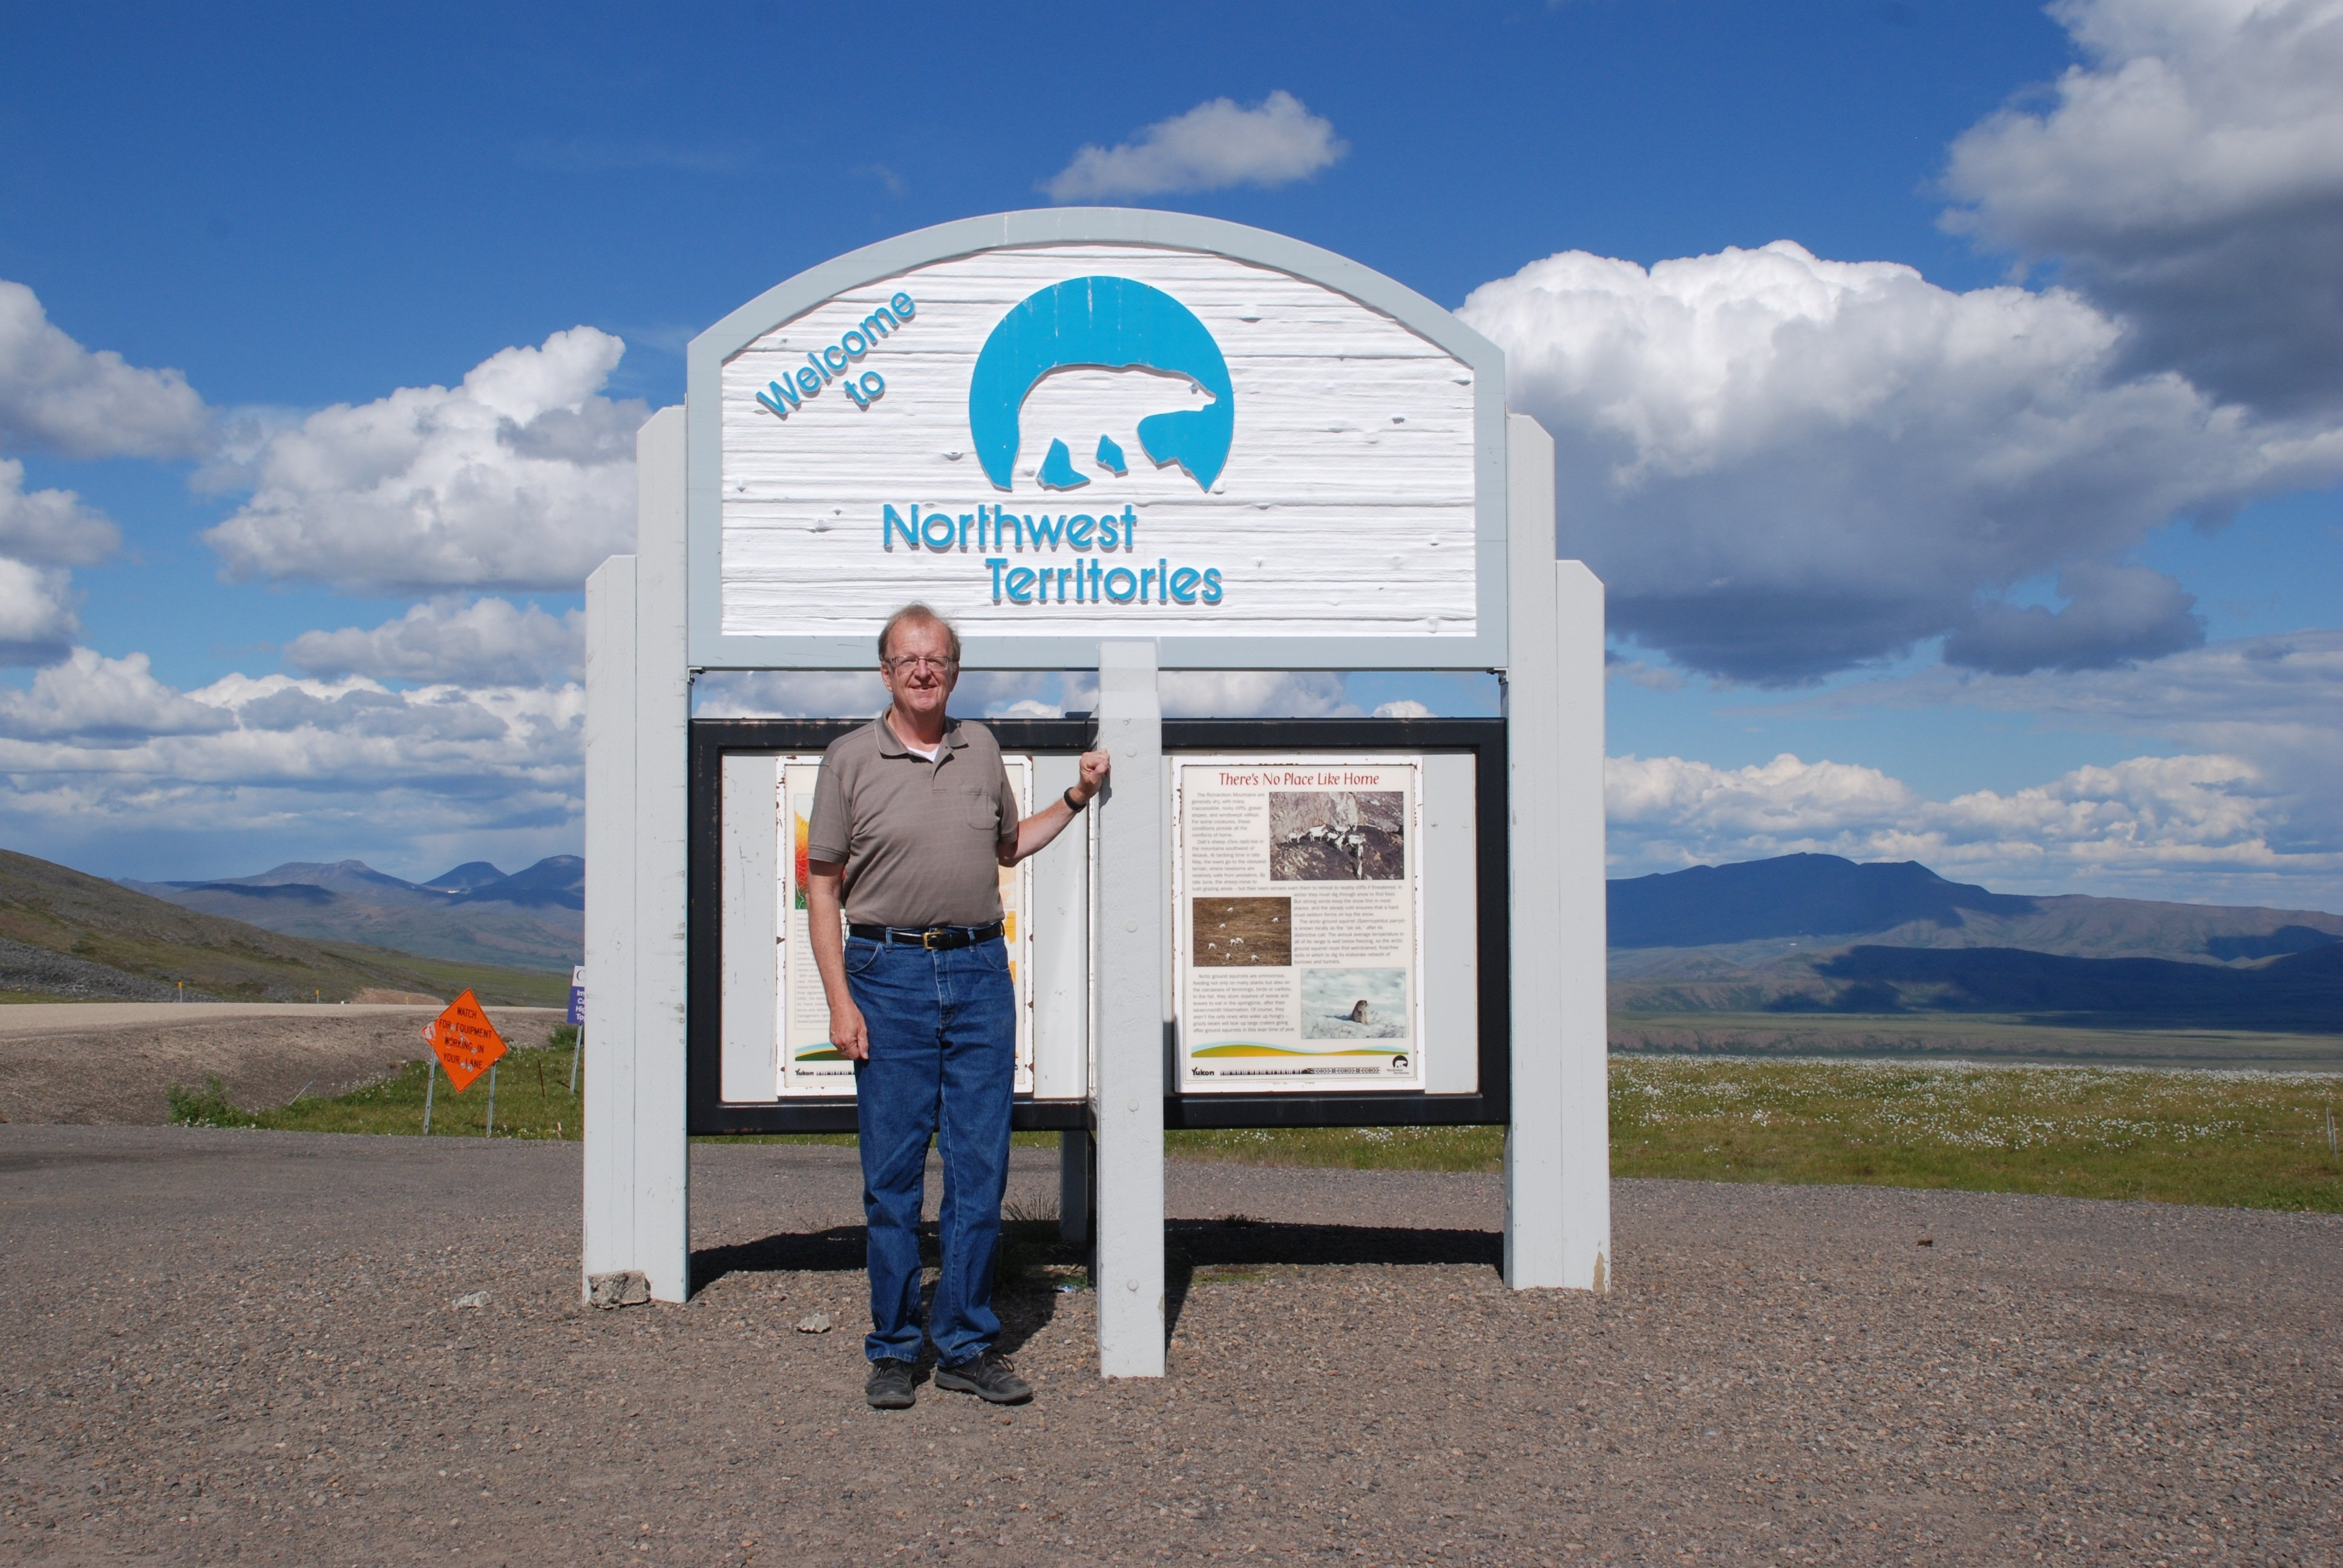 Ken Dewey visited the Canadian Northwest Territories, documenting the impacts of climate change for his outreach speaker series and his photo web sites.